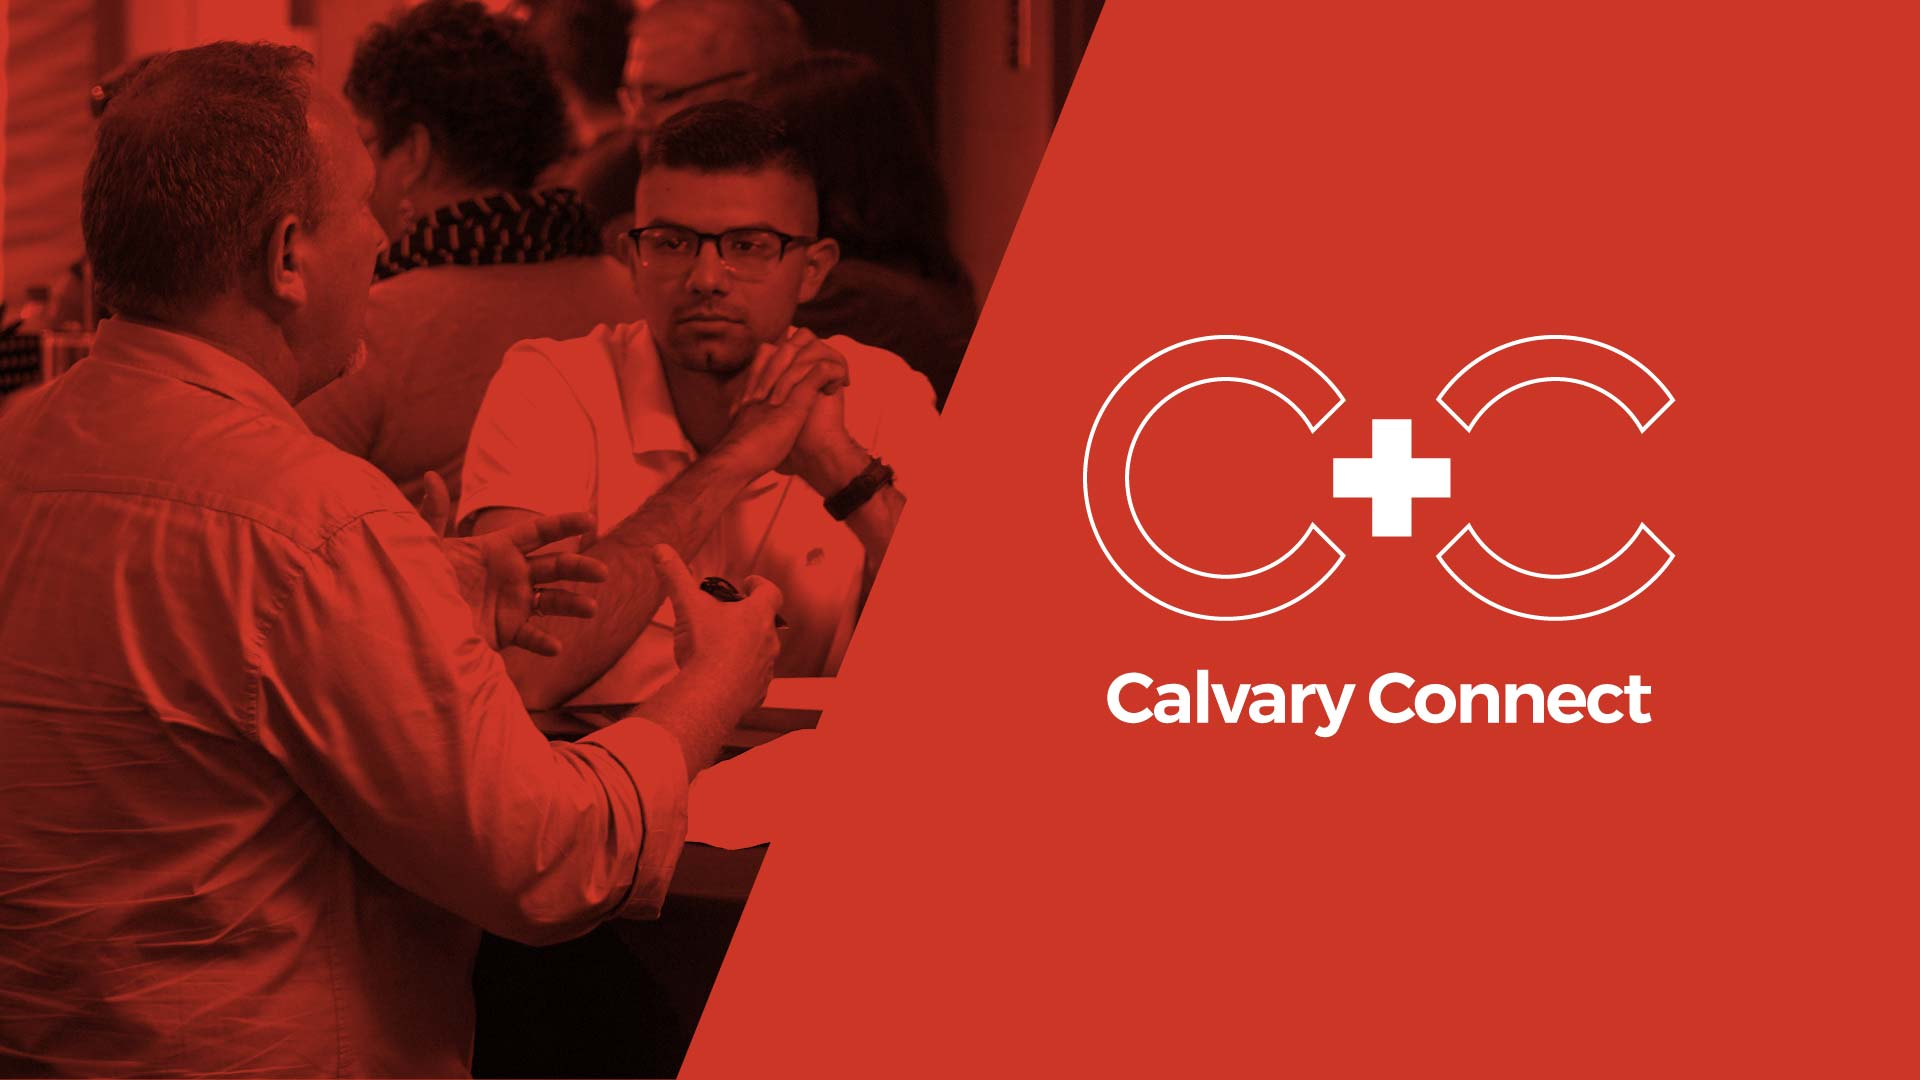 Calvary Connect